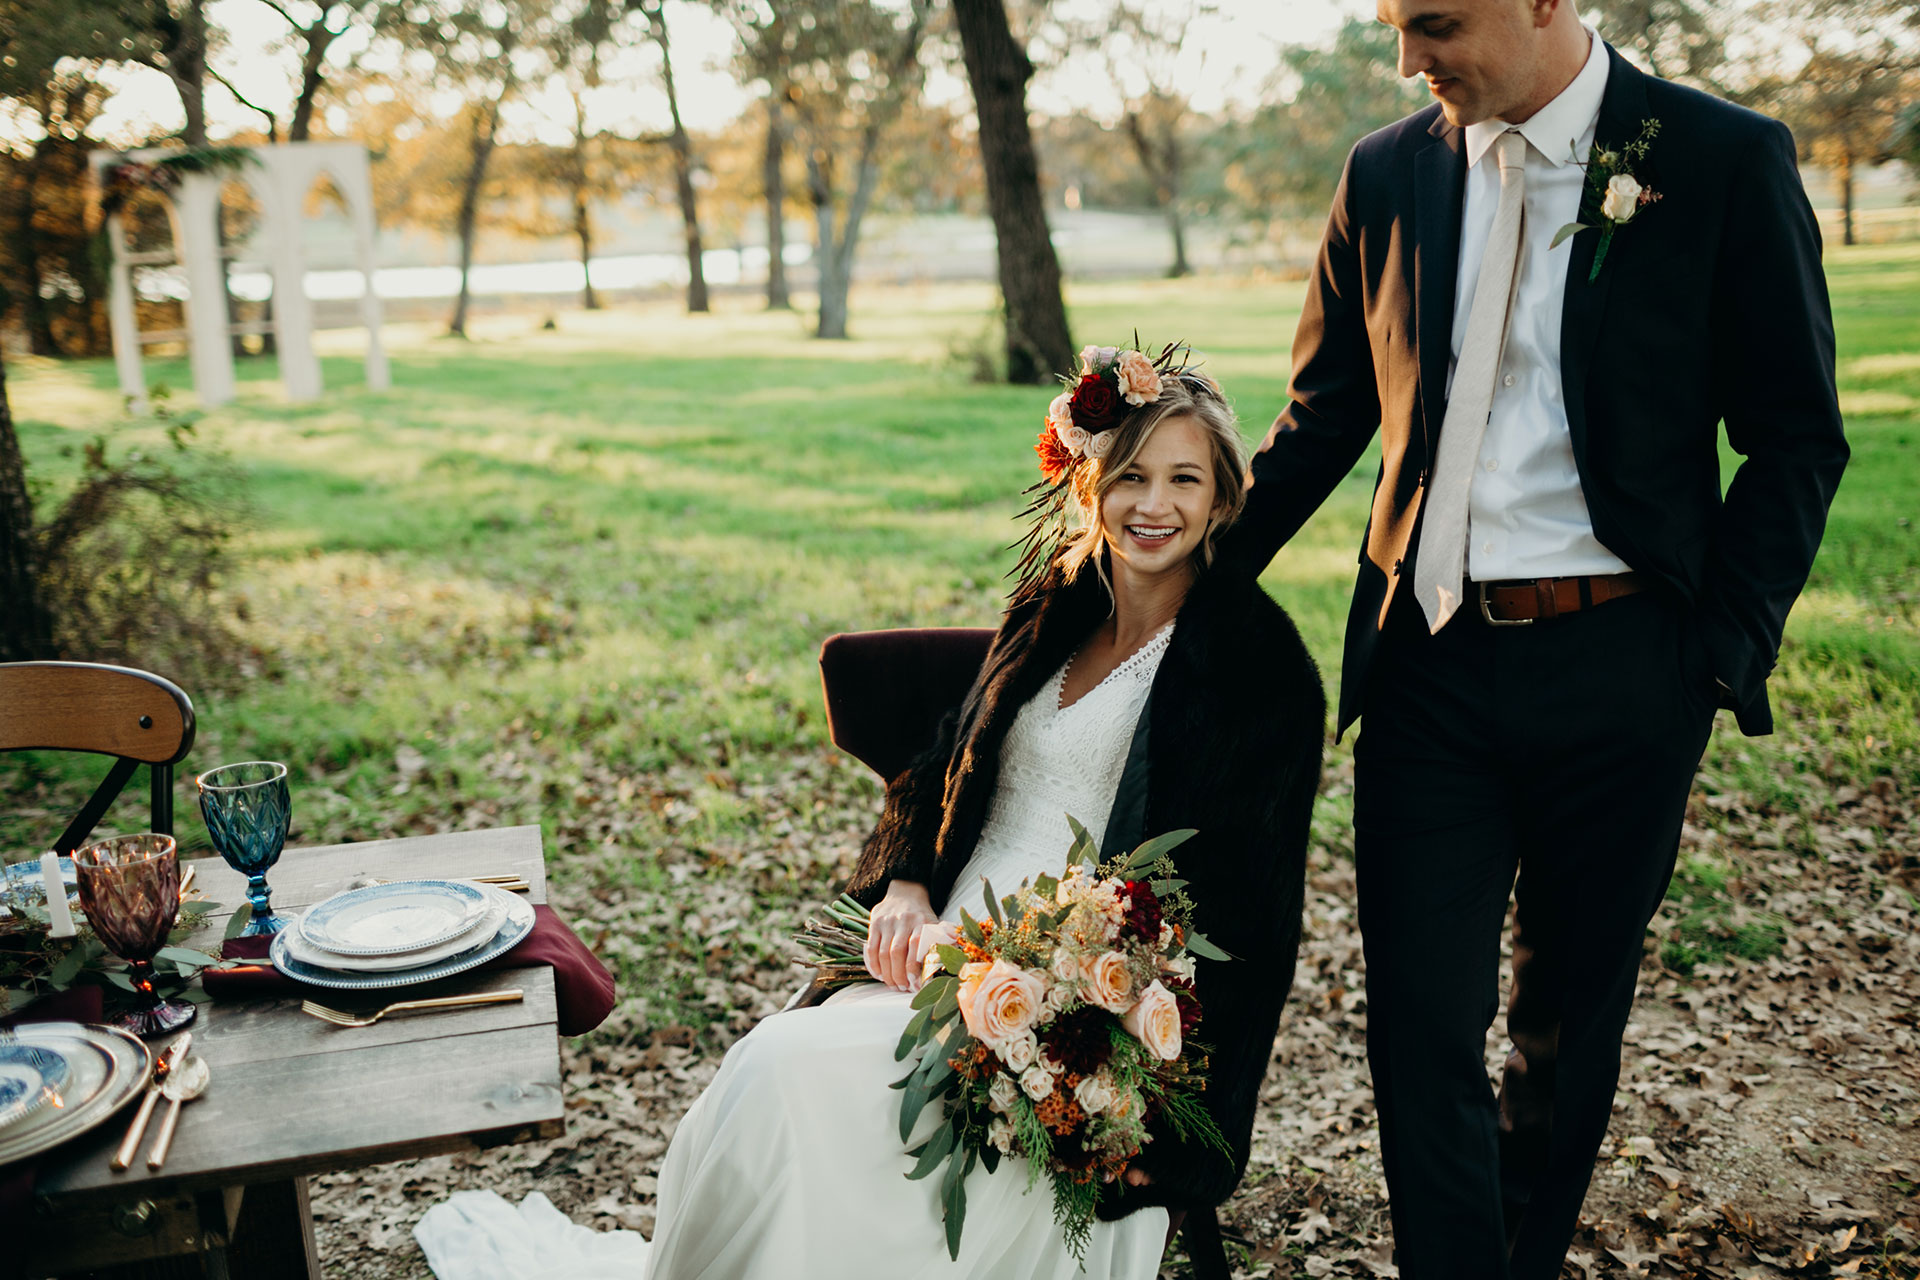 Bride and Groom Outdoors with Floral Arrangement, Surrounded by Mature Oaks